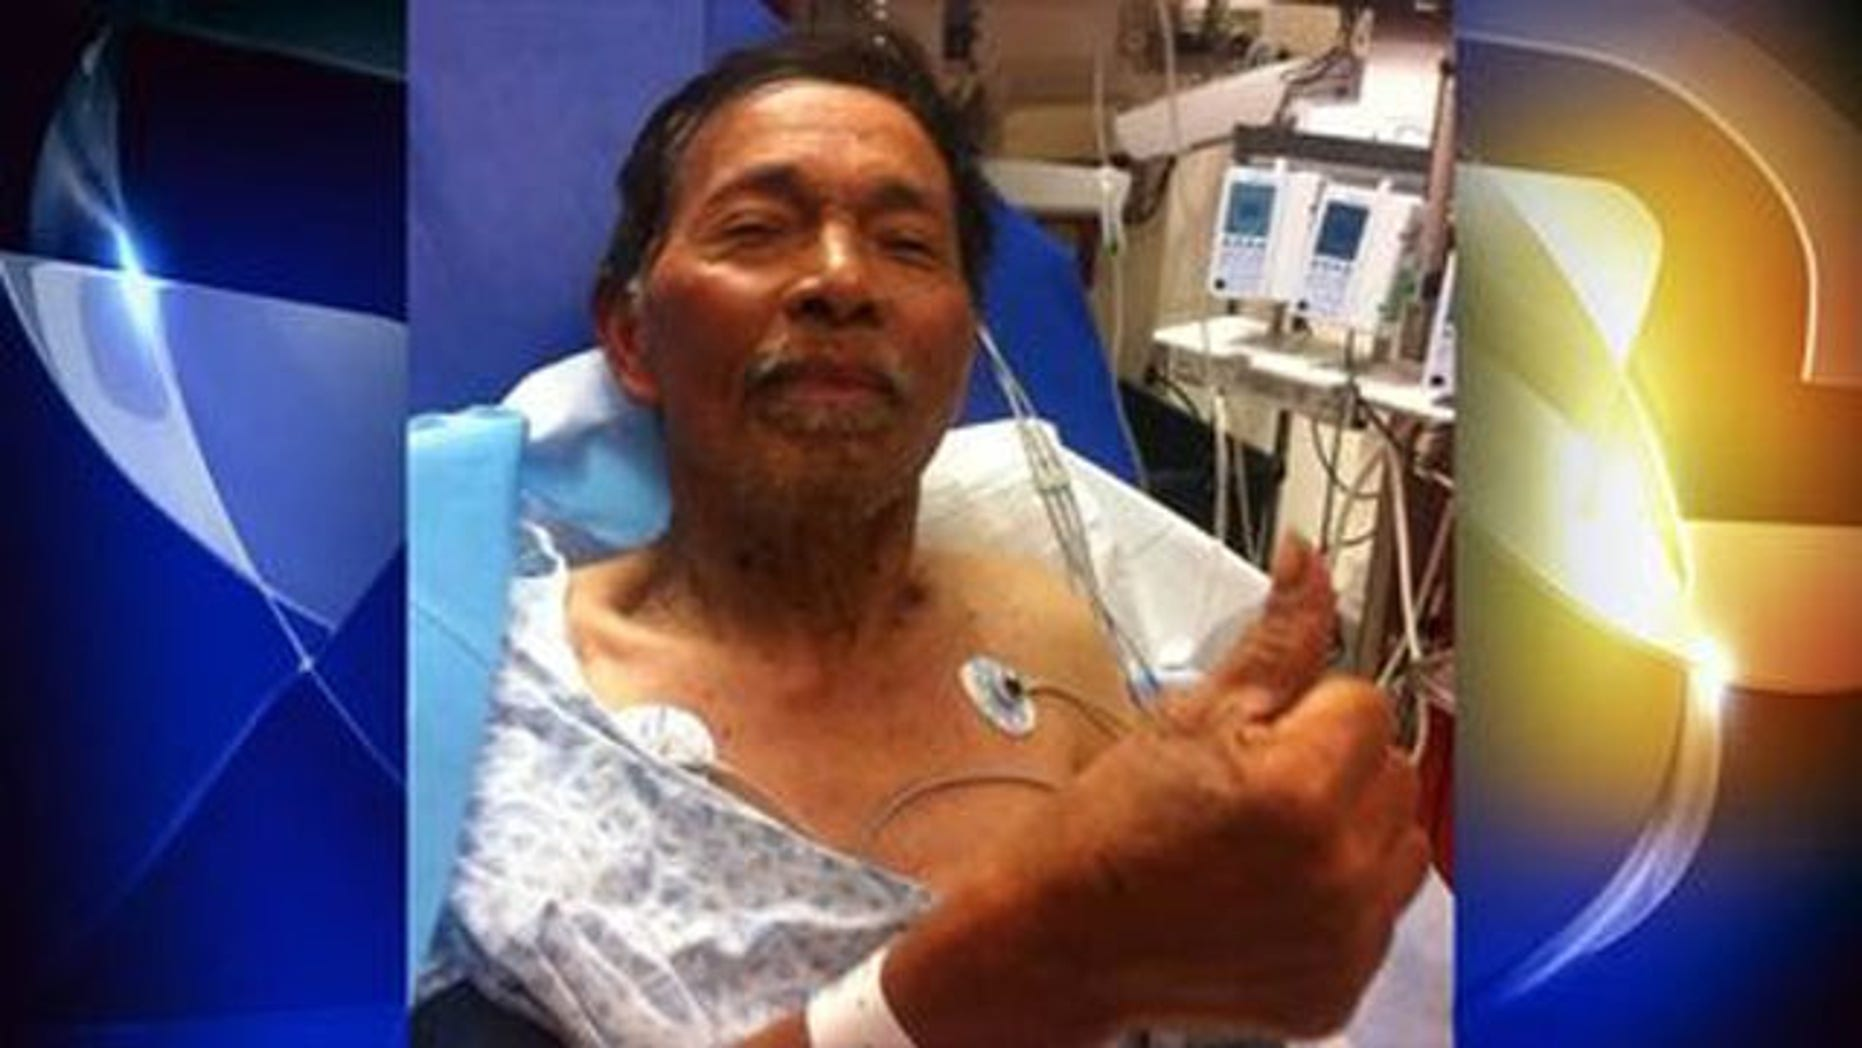 Gene Penaflor recovering in hospital (Photo courtesy Jeremy Penaflor/KTVU)